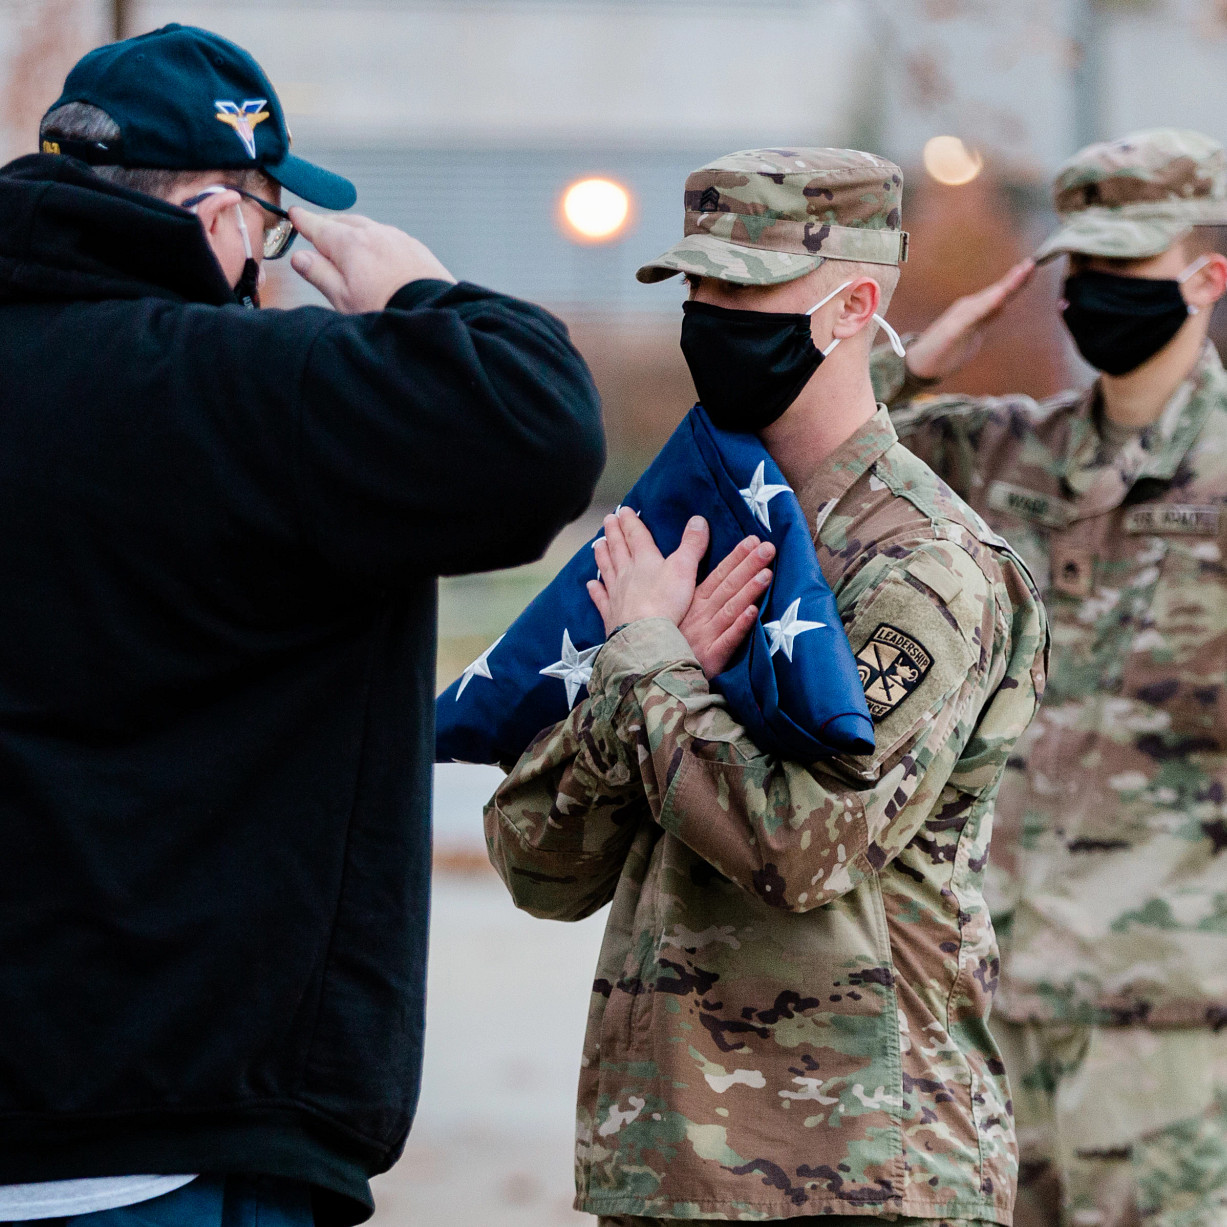 A man salutes a soldier holding a flag